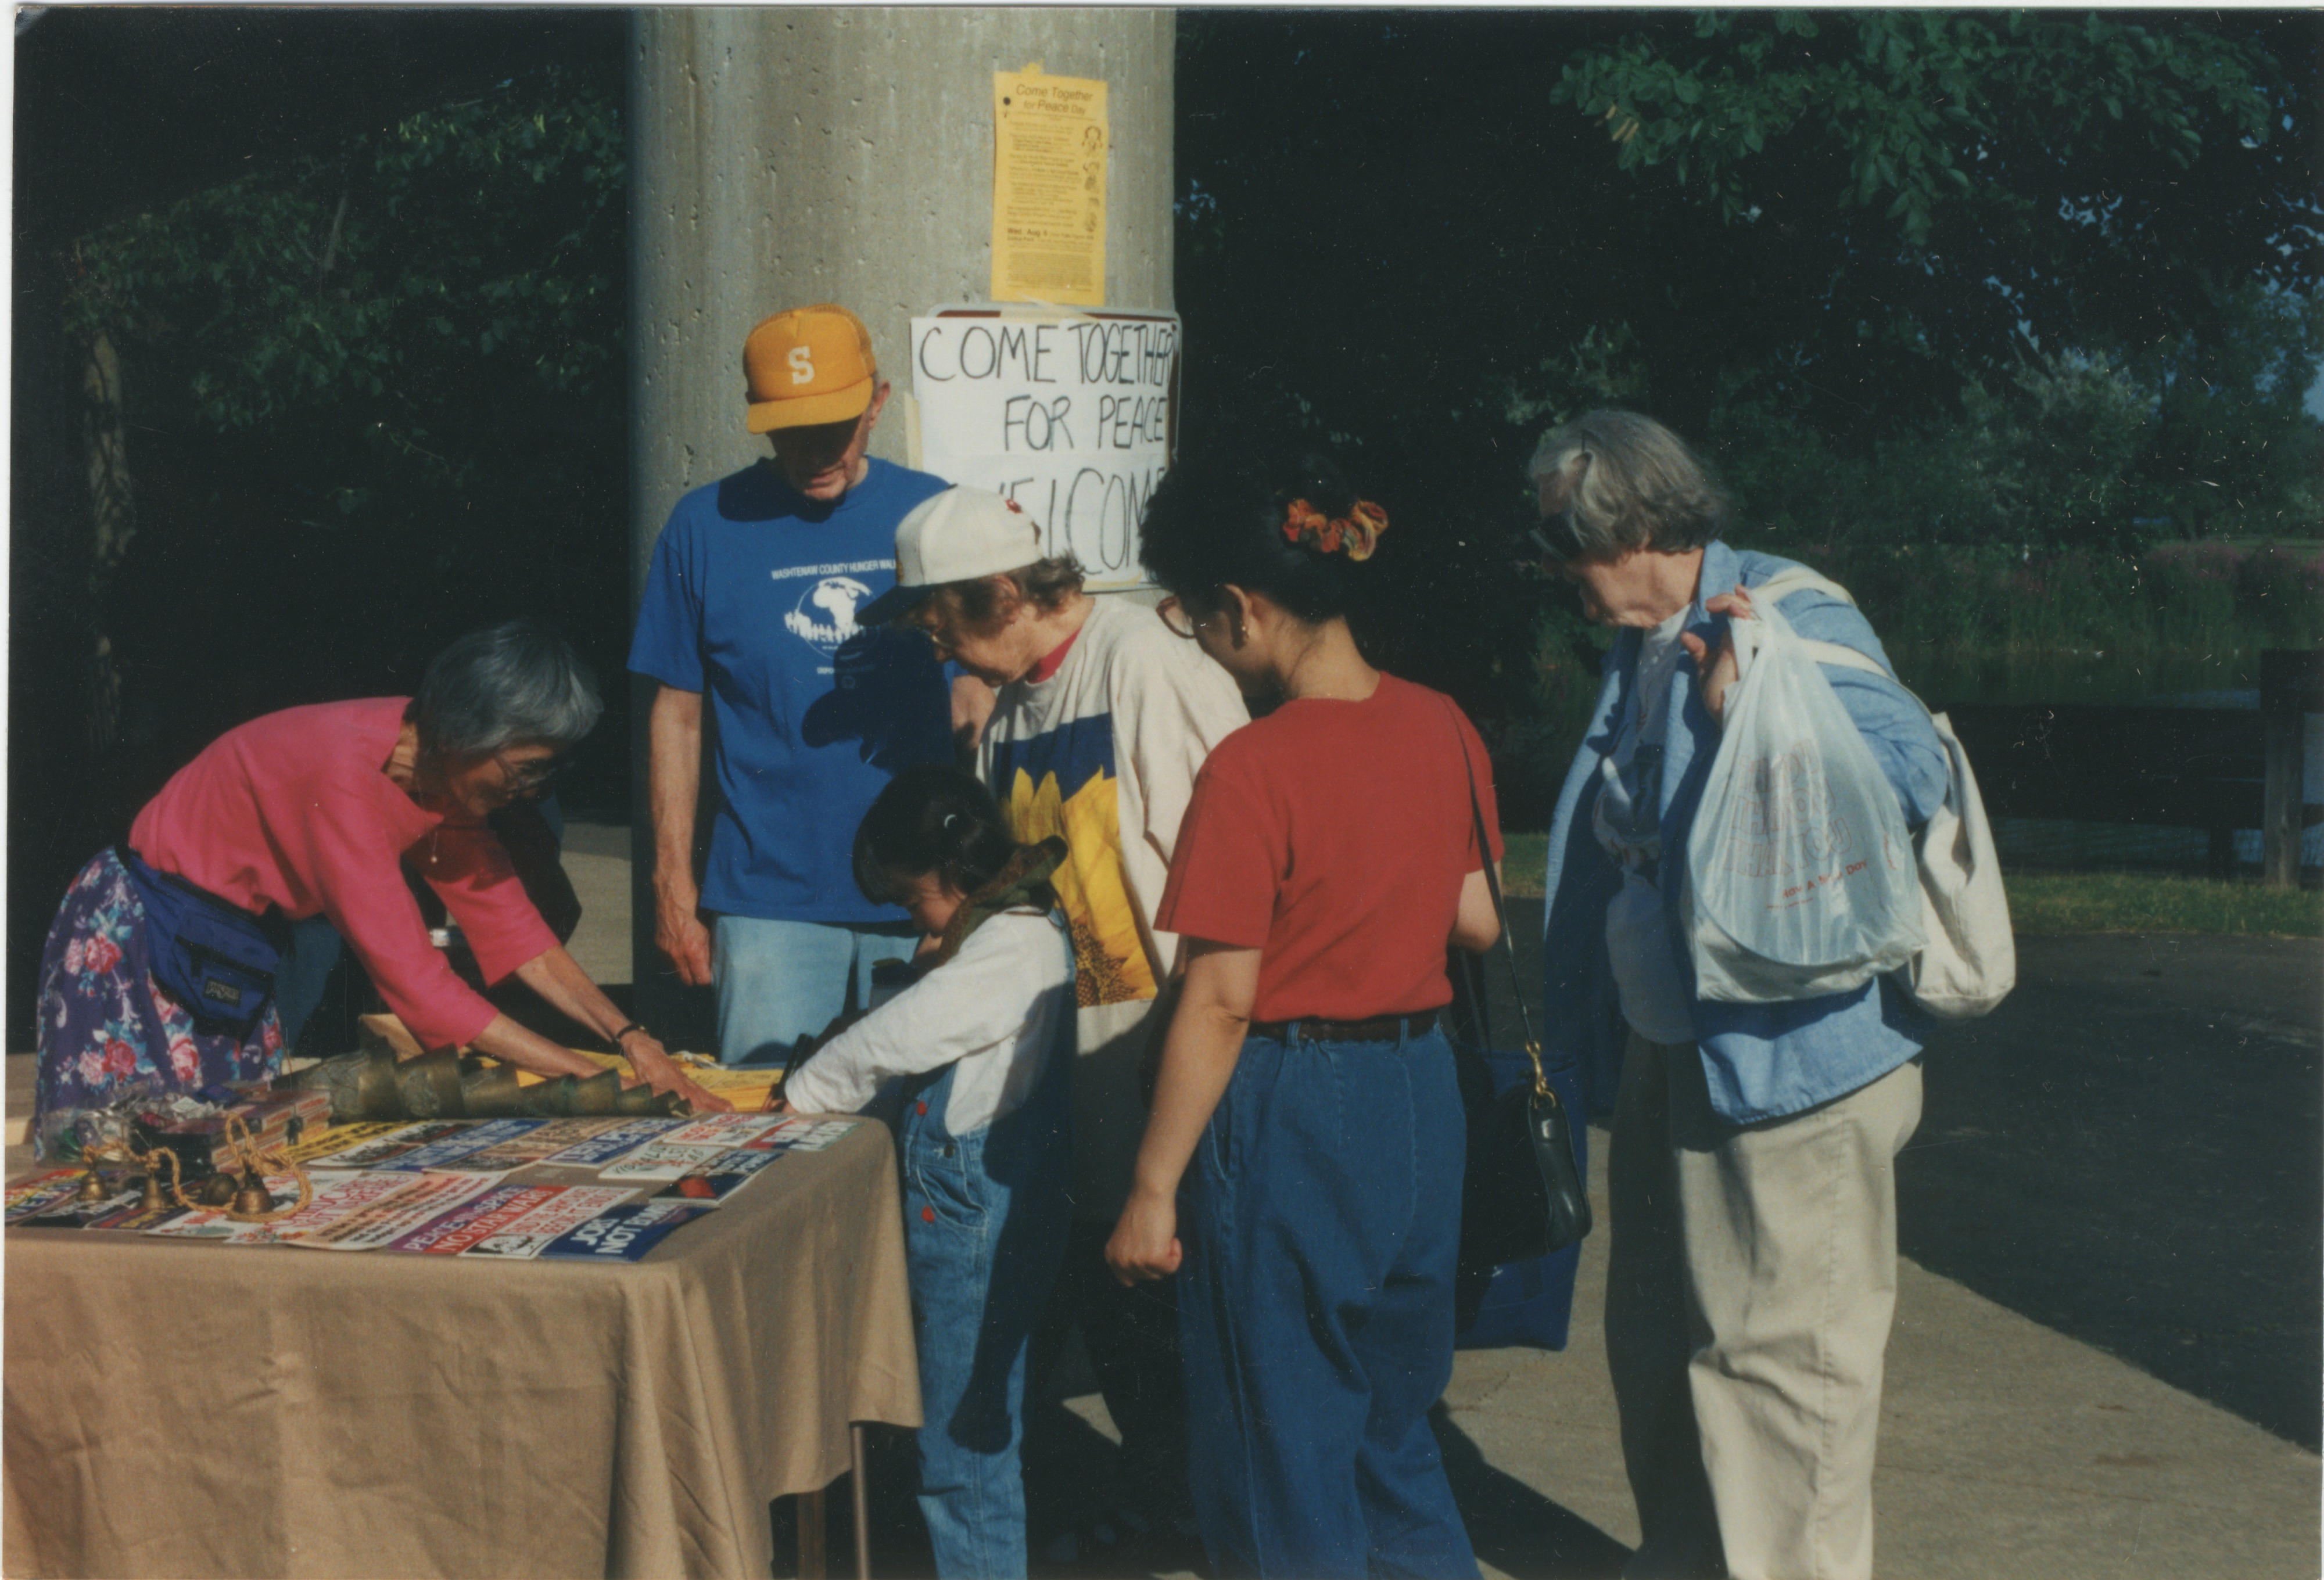 Interfaith Council for Peace and Justice: At the Summer Picnic, 1997 image